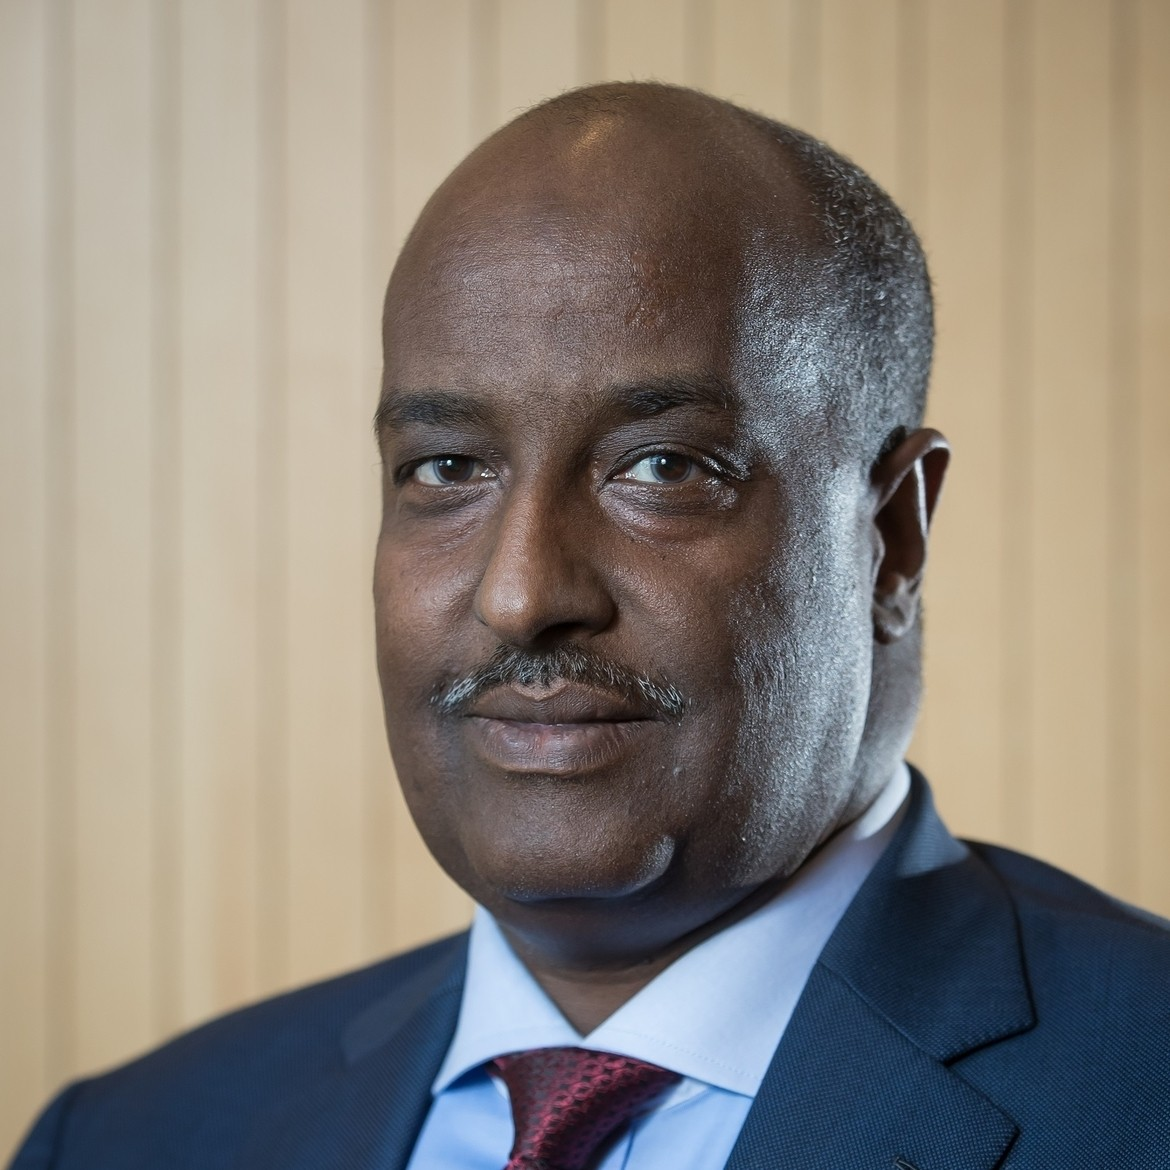 Abdishakur Abdulle - Associate Director of the Public Health Research Center at NYUAD